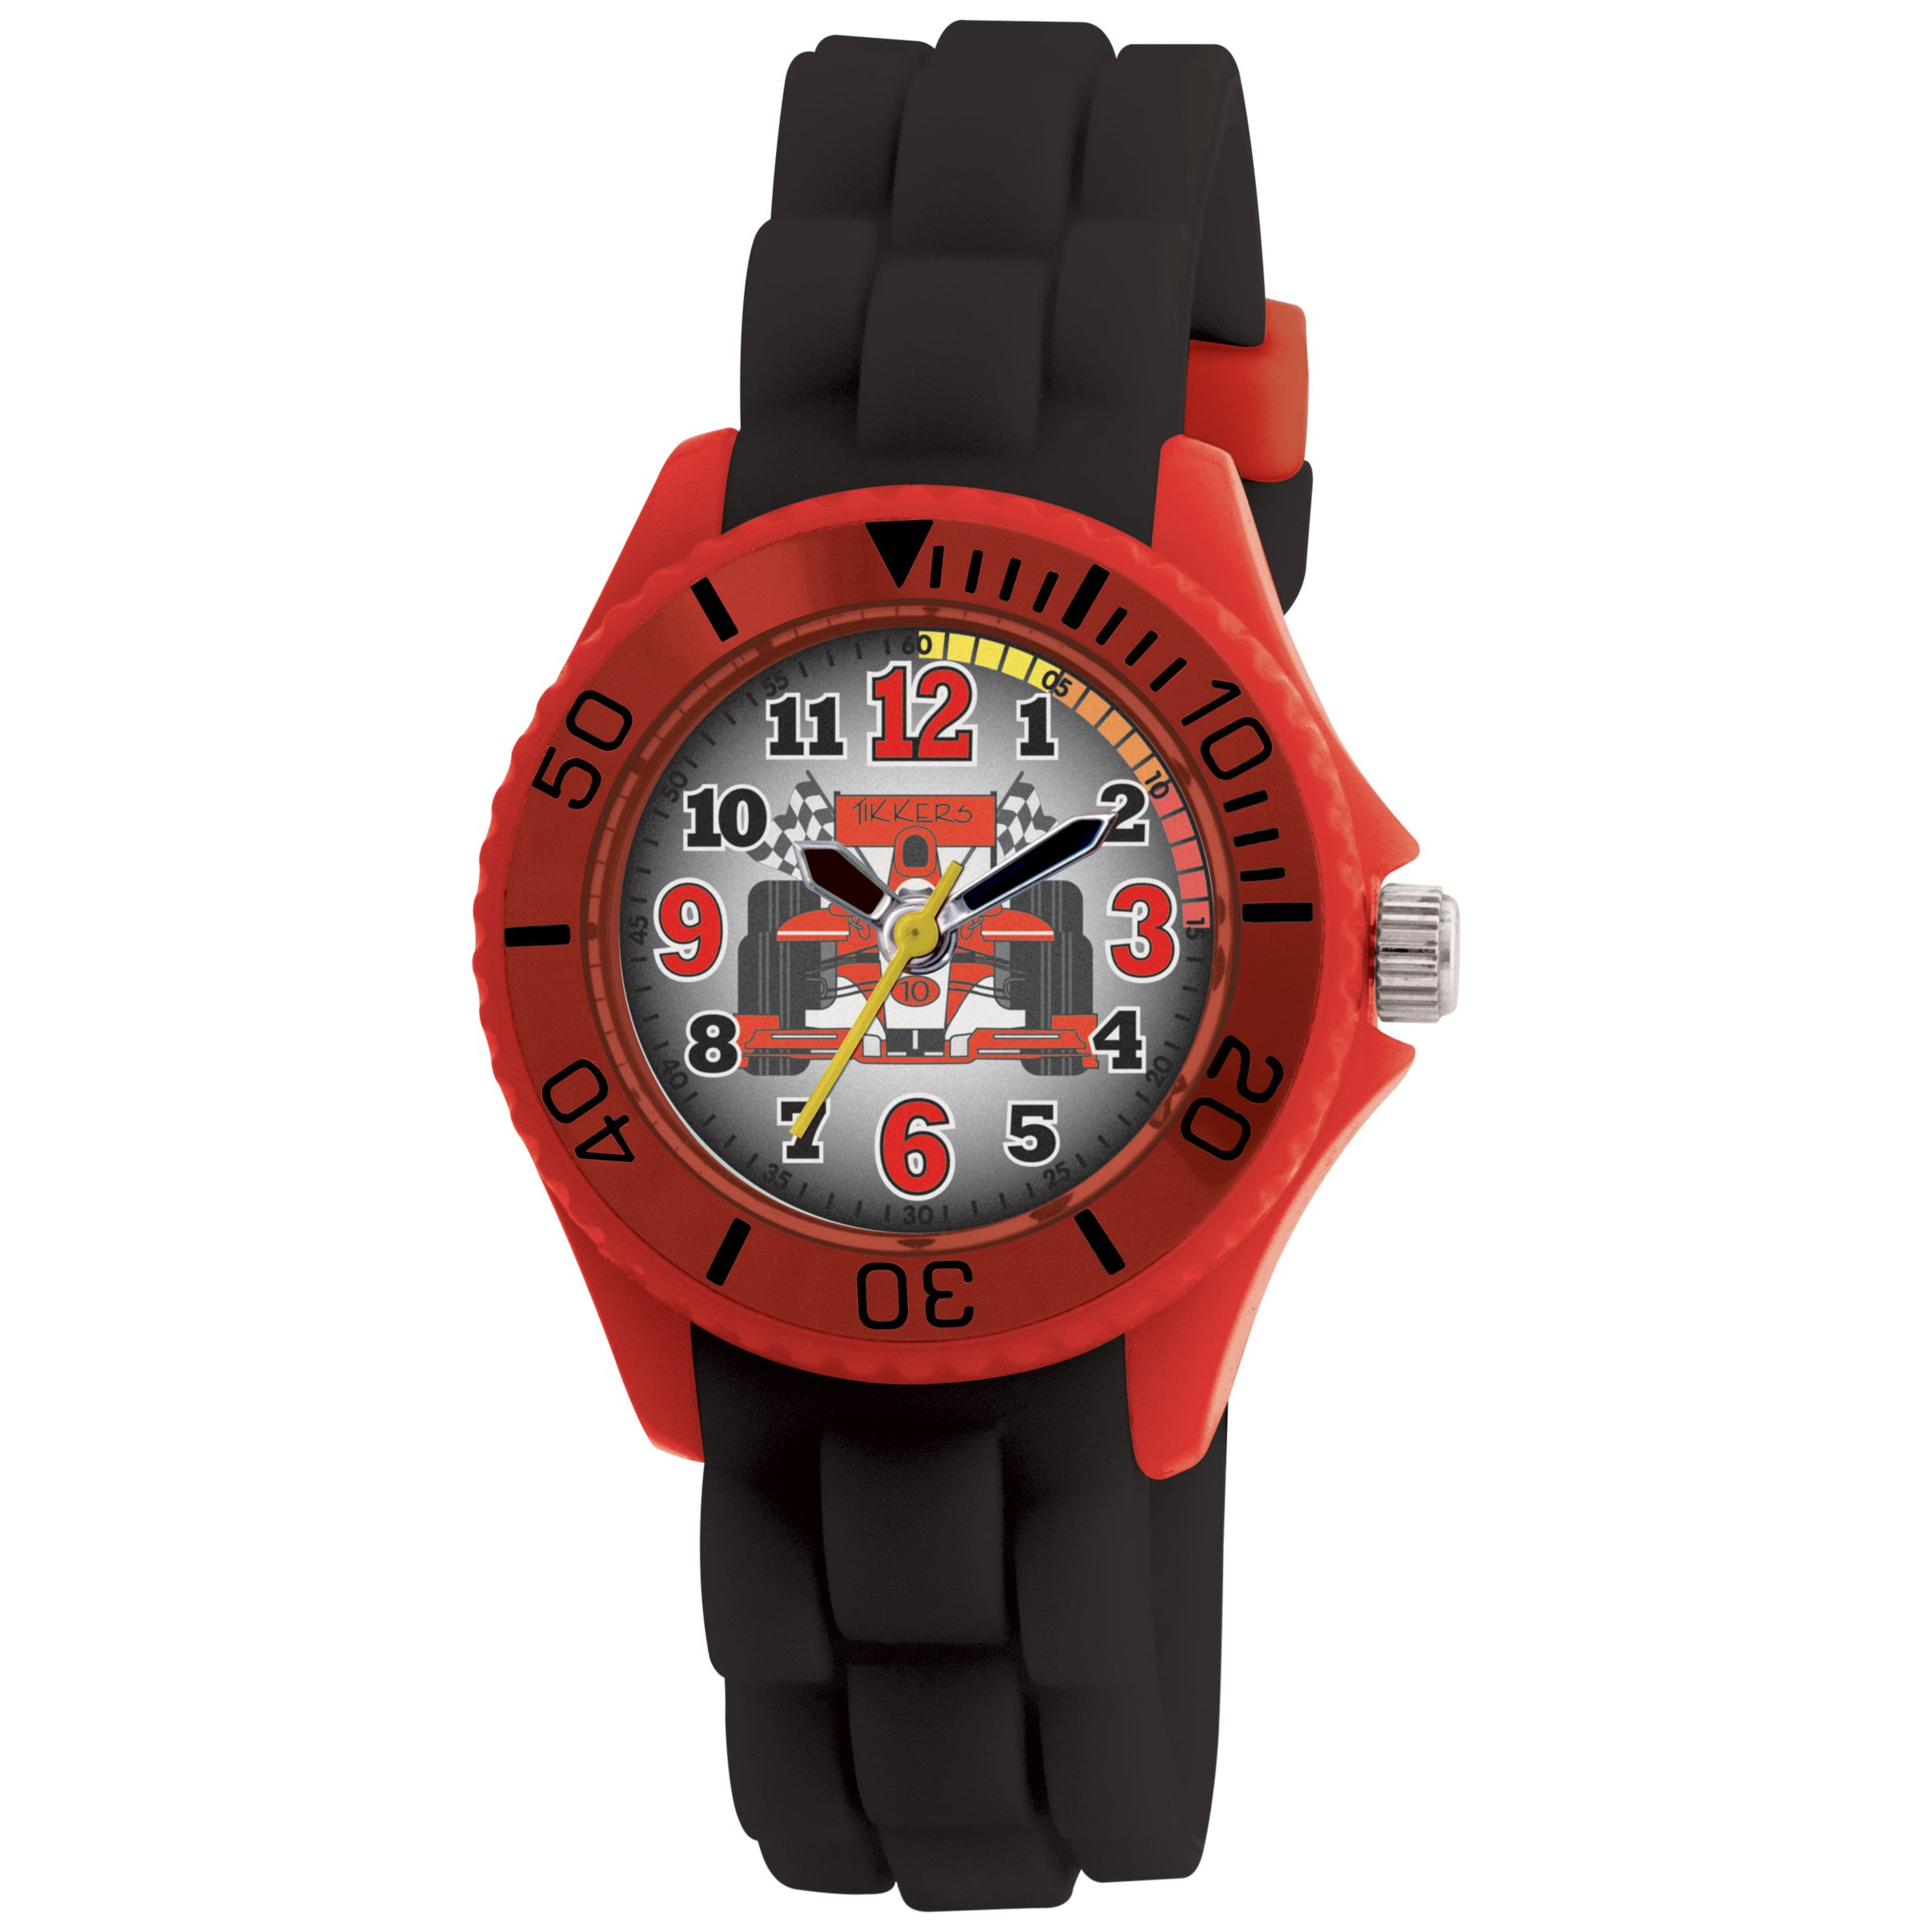 Tikkers TK0024 Kids Racecar Rubber Strap Watch, Black